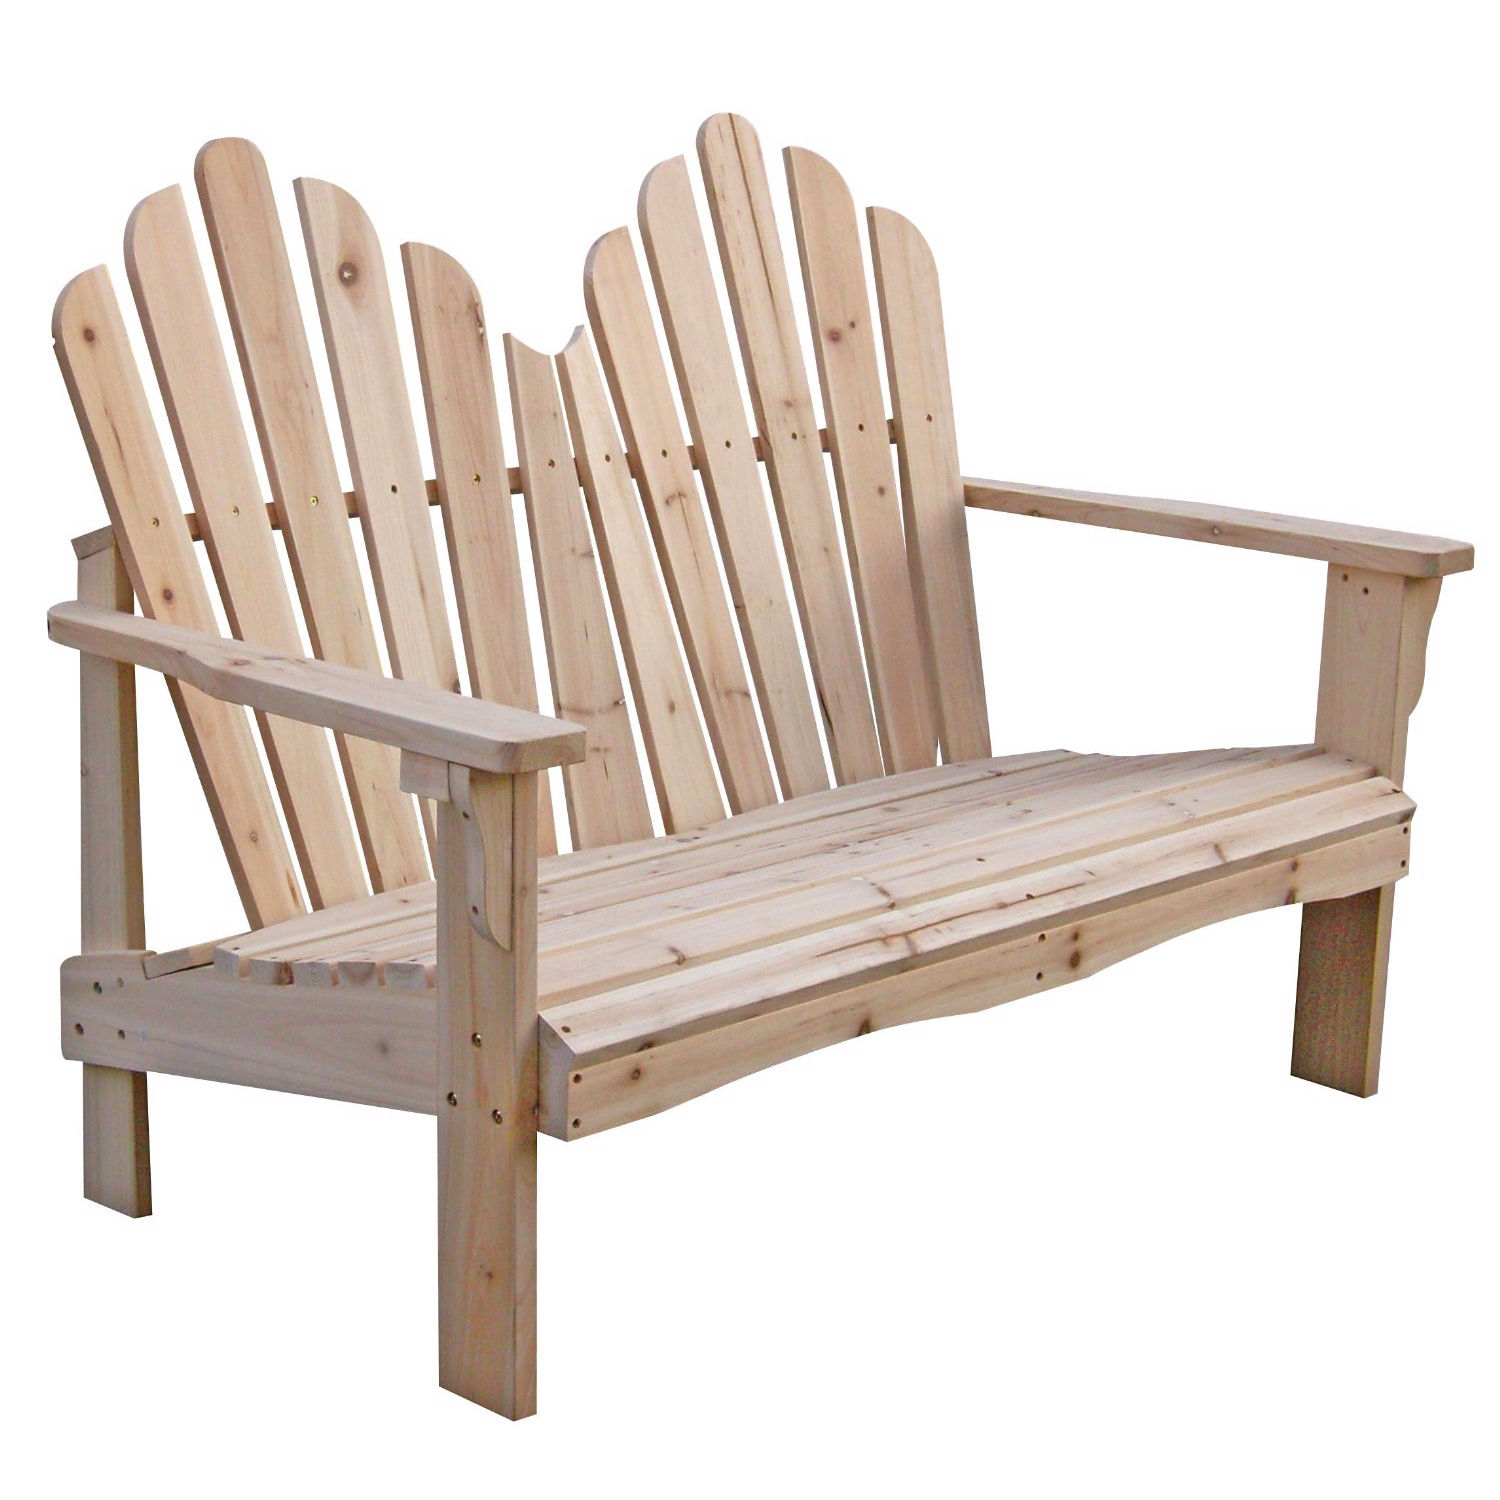 Adirondack chairs wood type wooden adirondack rocking for Types of wooden chairs